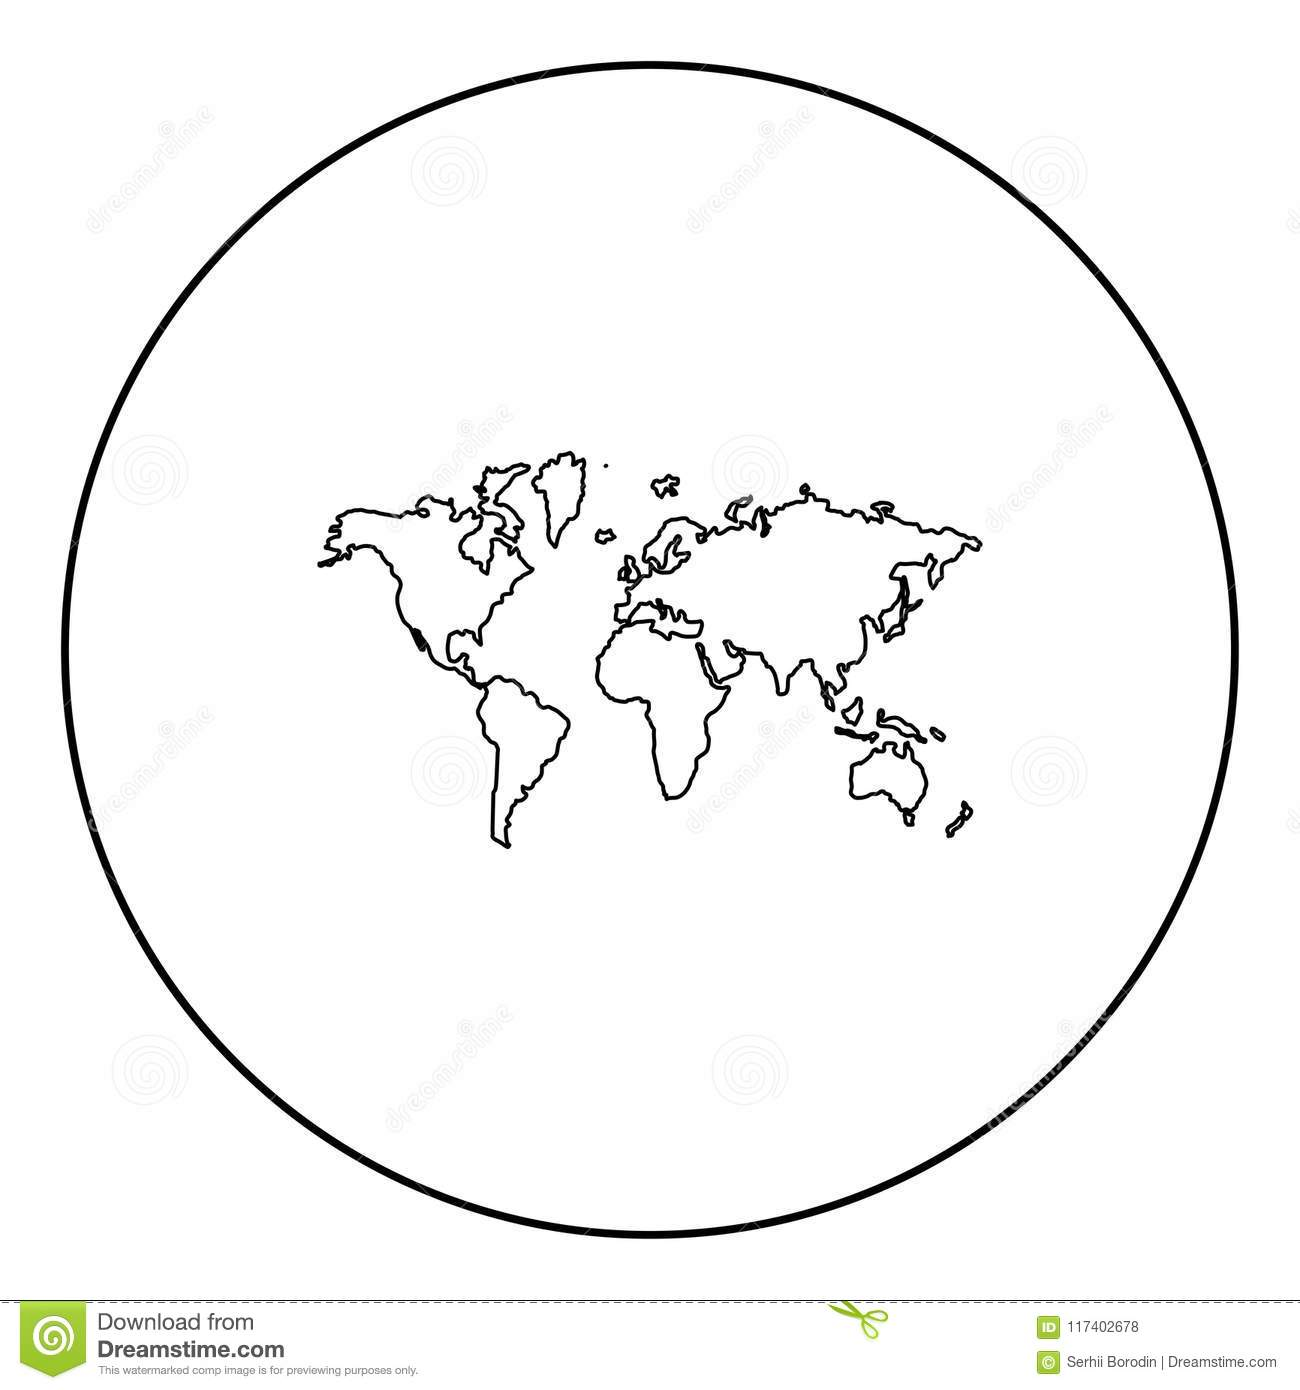 world map icon black color in circle stock vector illustration of